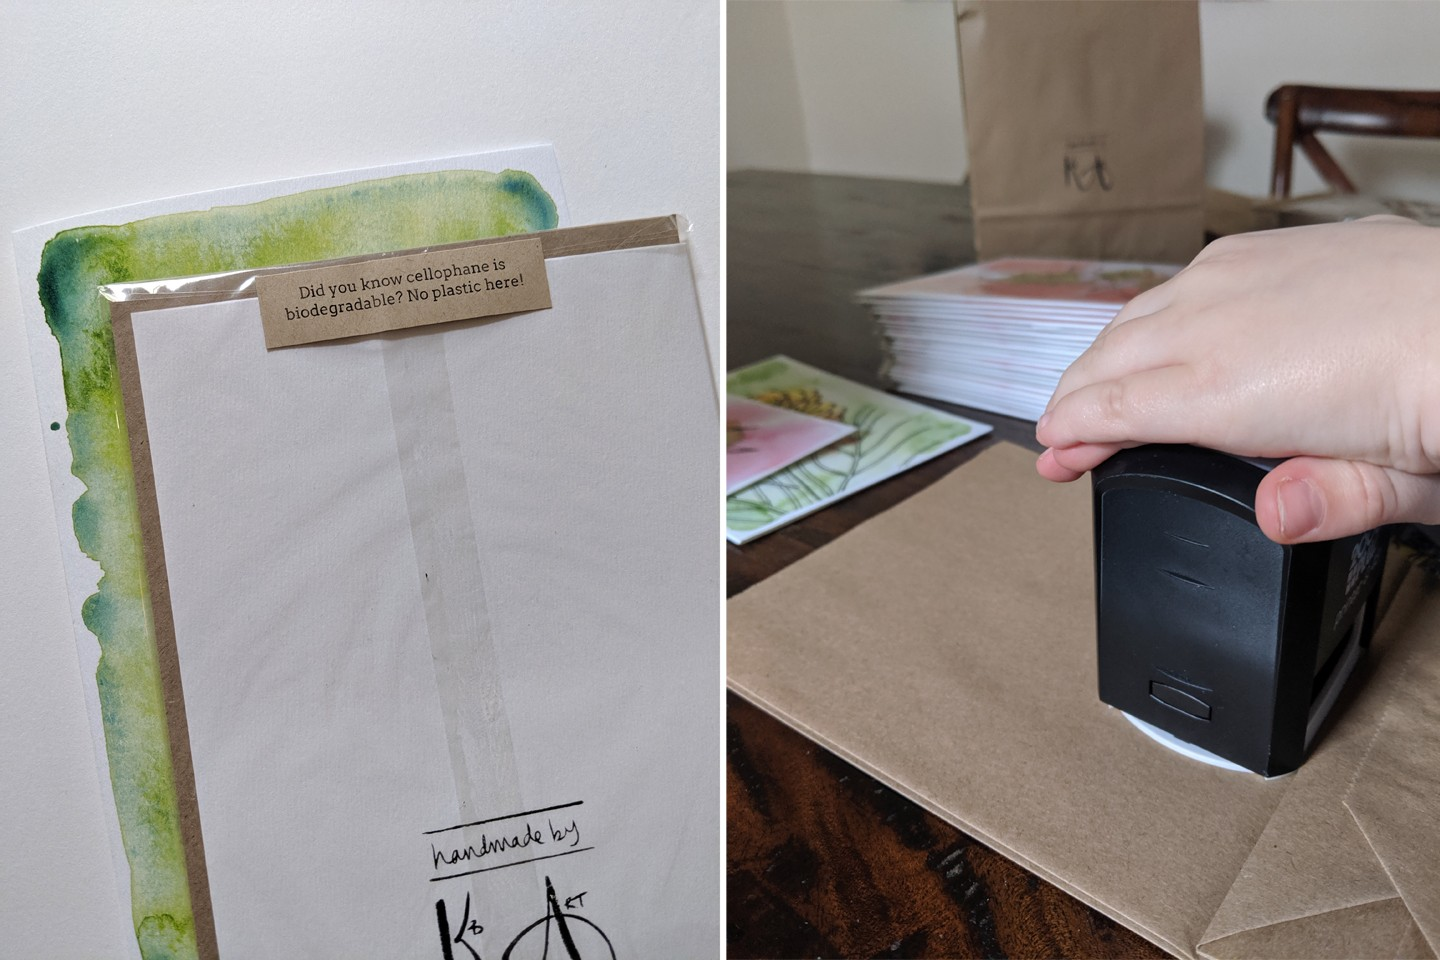 Sustainable packaging used by Kb Handmade Art; biodegradable cellophane sleeves and hand-stamped brown paper bags